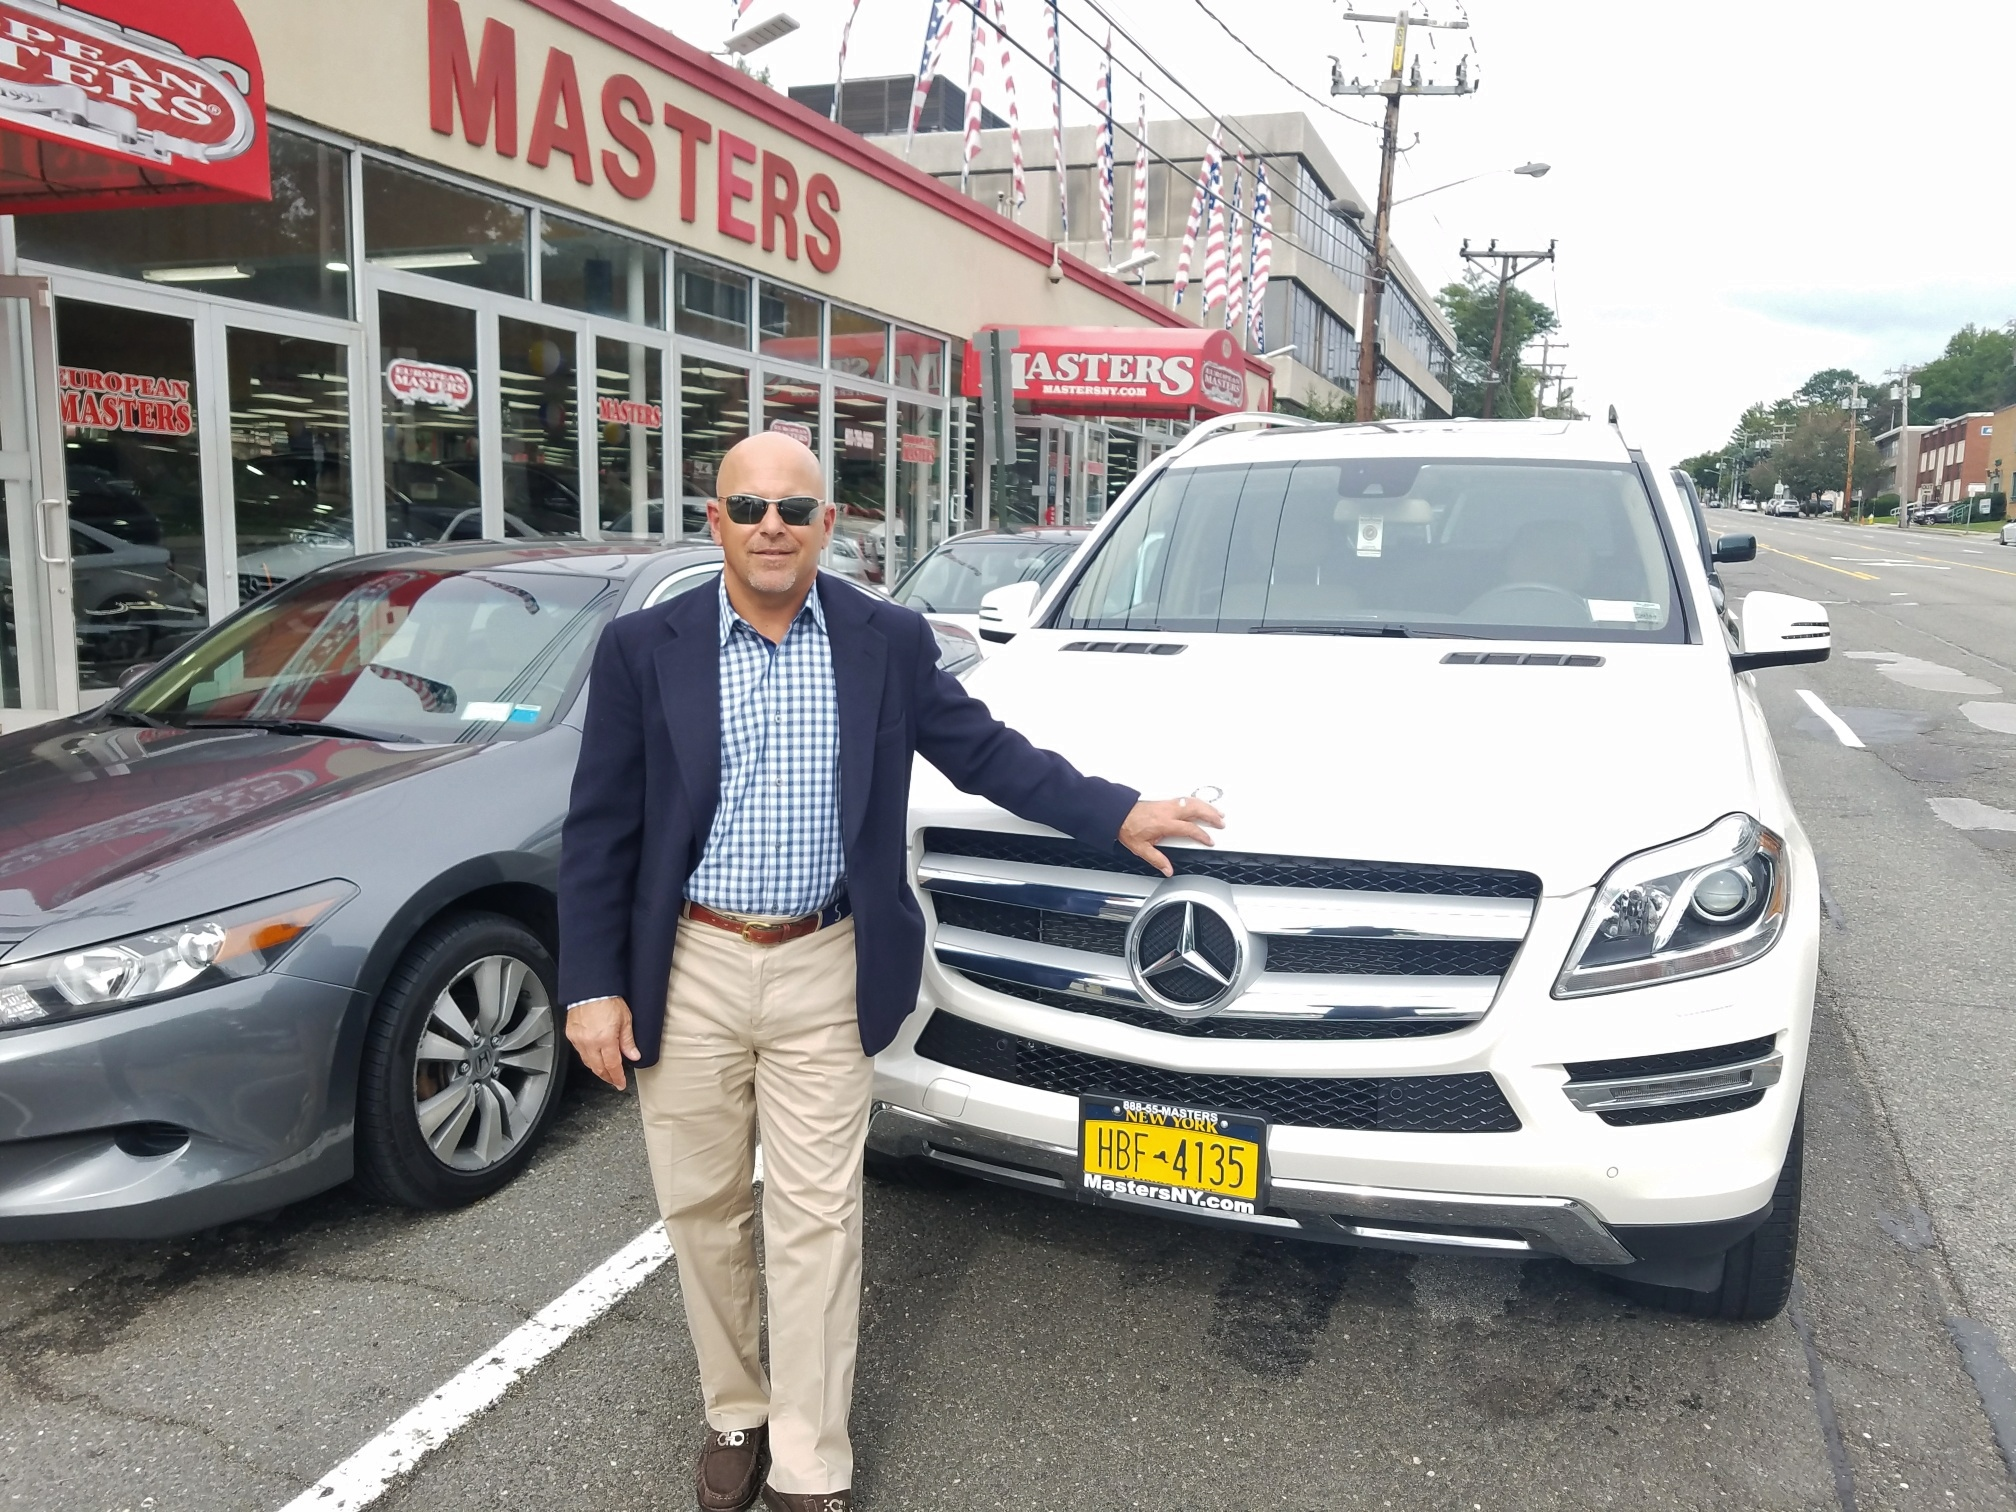 European masters 275 northern blvd great neck ny for Mercedes benz dealer northern blvd